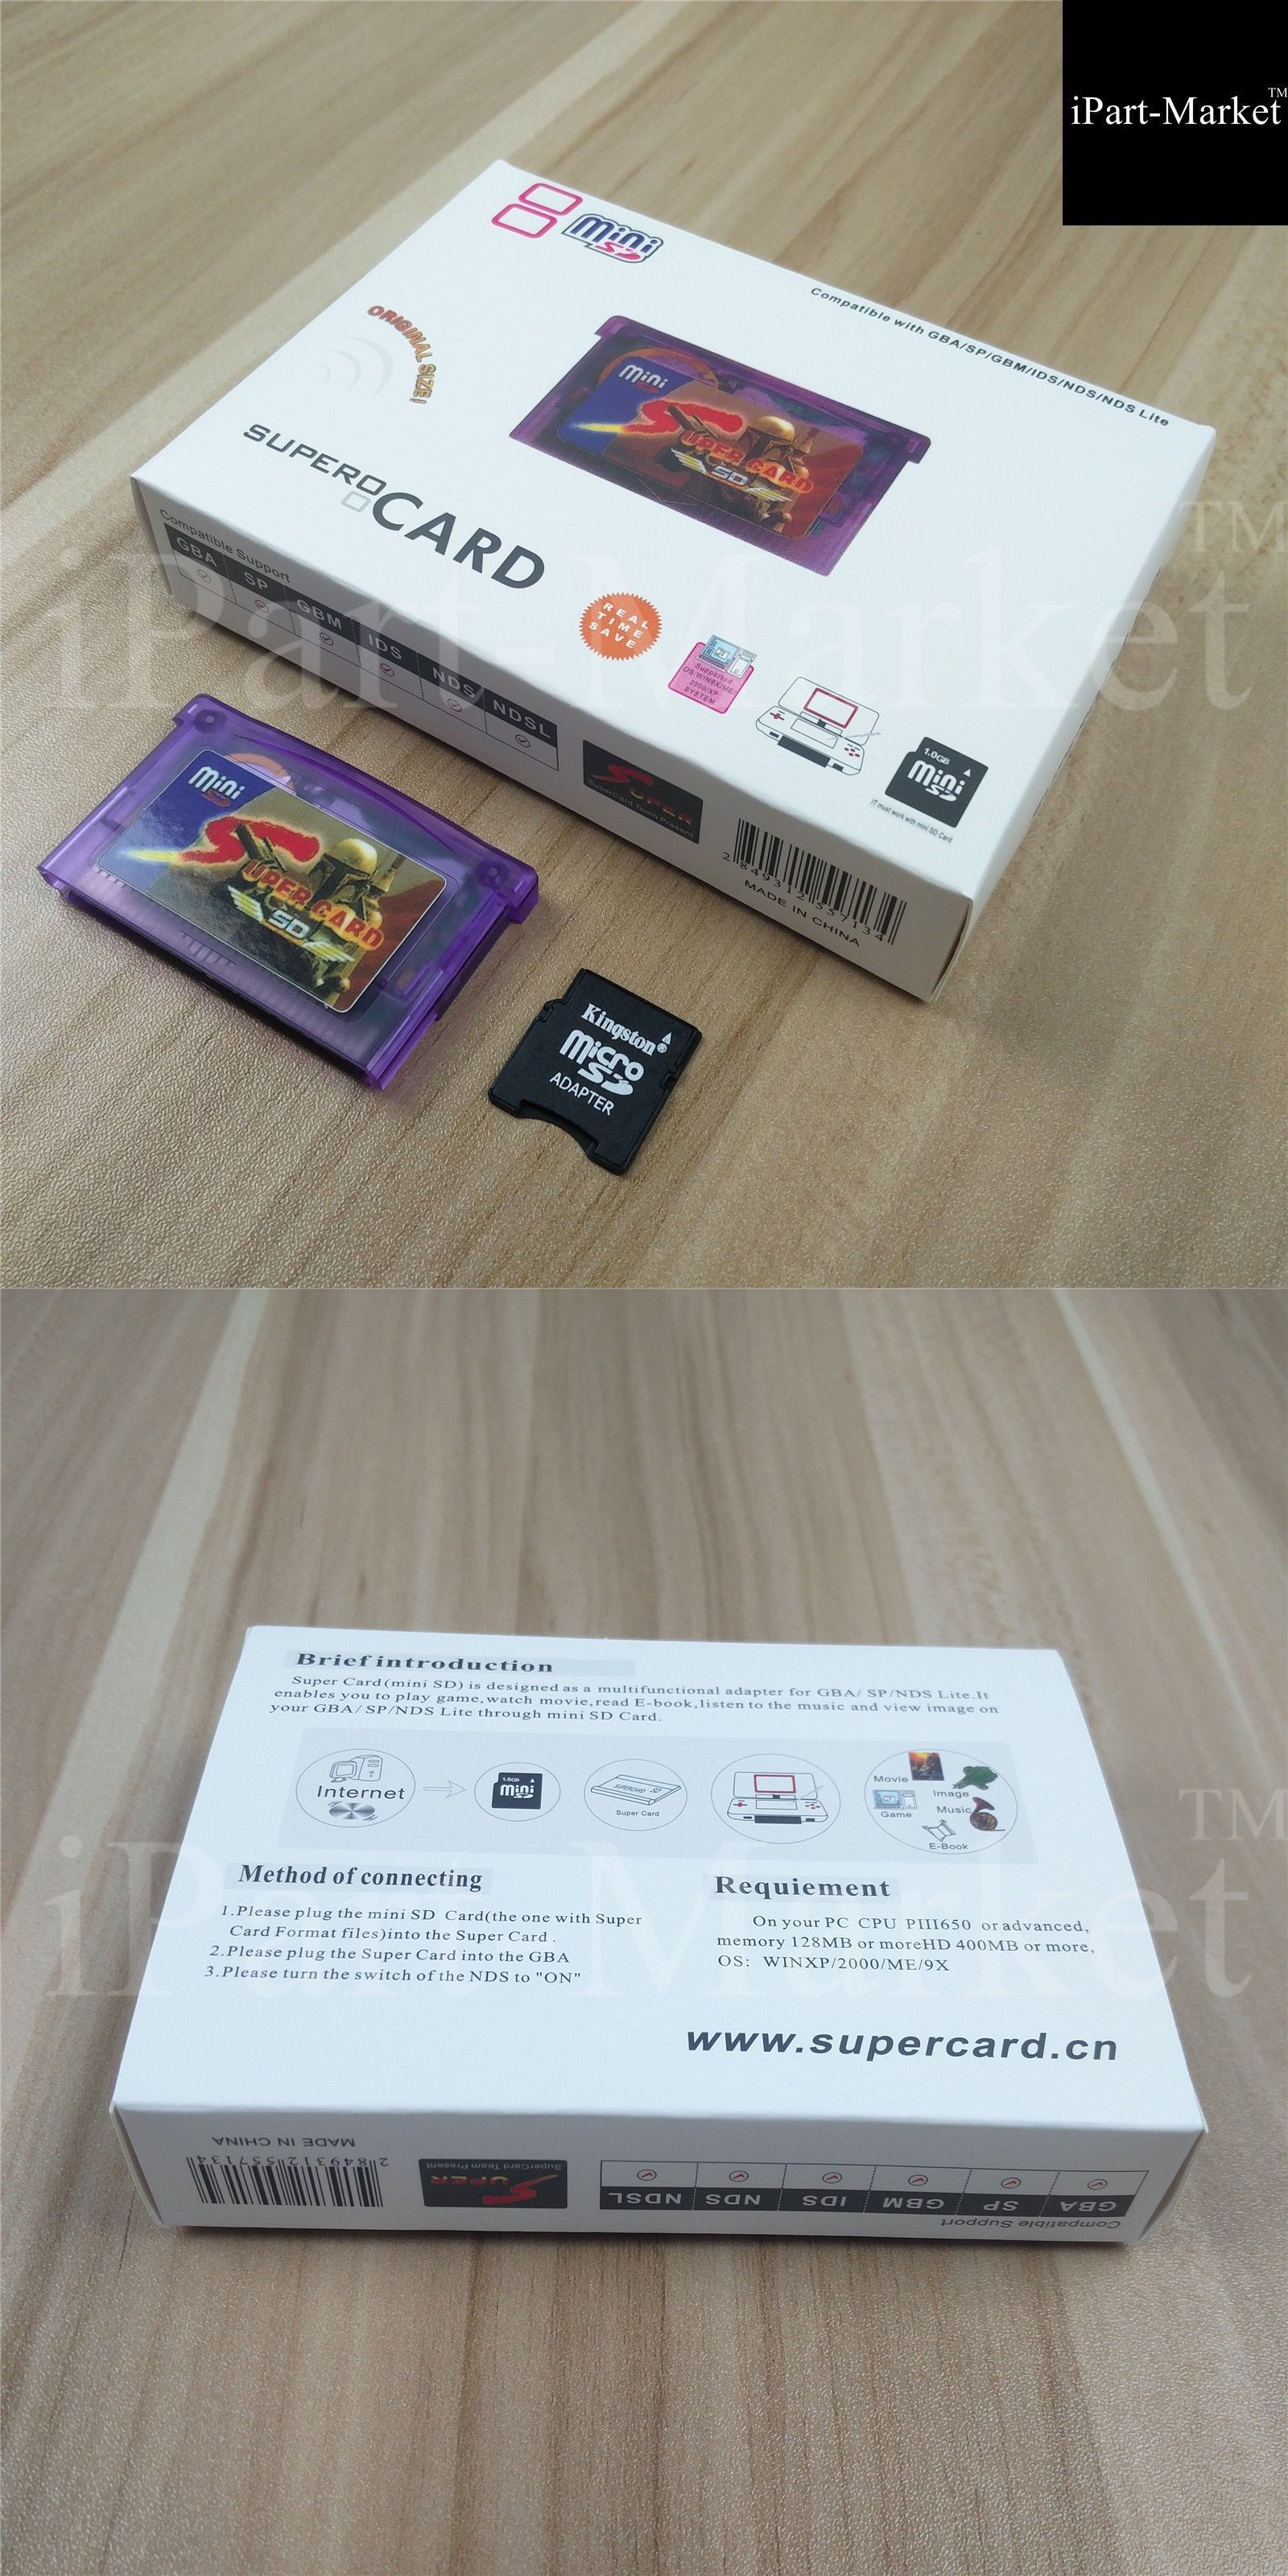 Other Video Accessories 49230 Supercard Mini Sd Flash Card Adapter Cartridge 2gb For Gba Sp Gbm Ids Nds Ndsl It Now Only 15 99 On Ebay